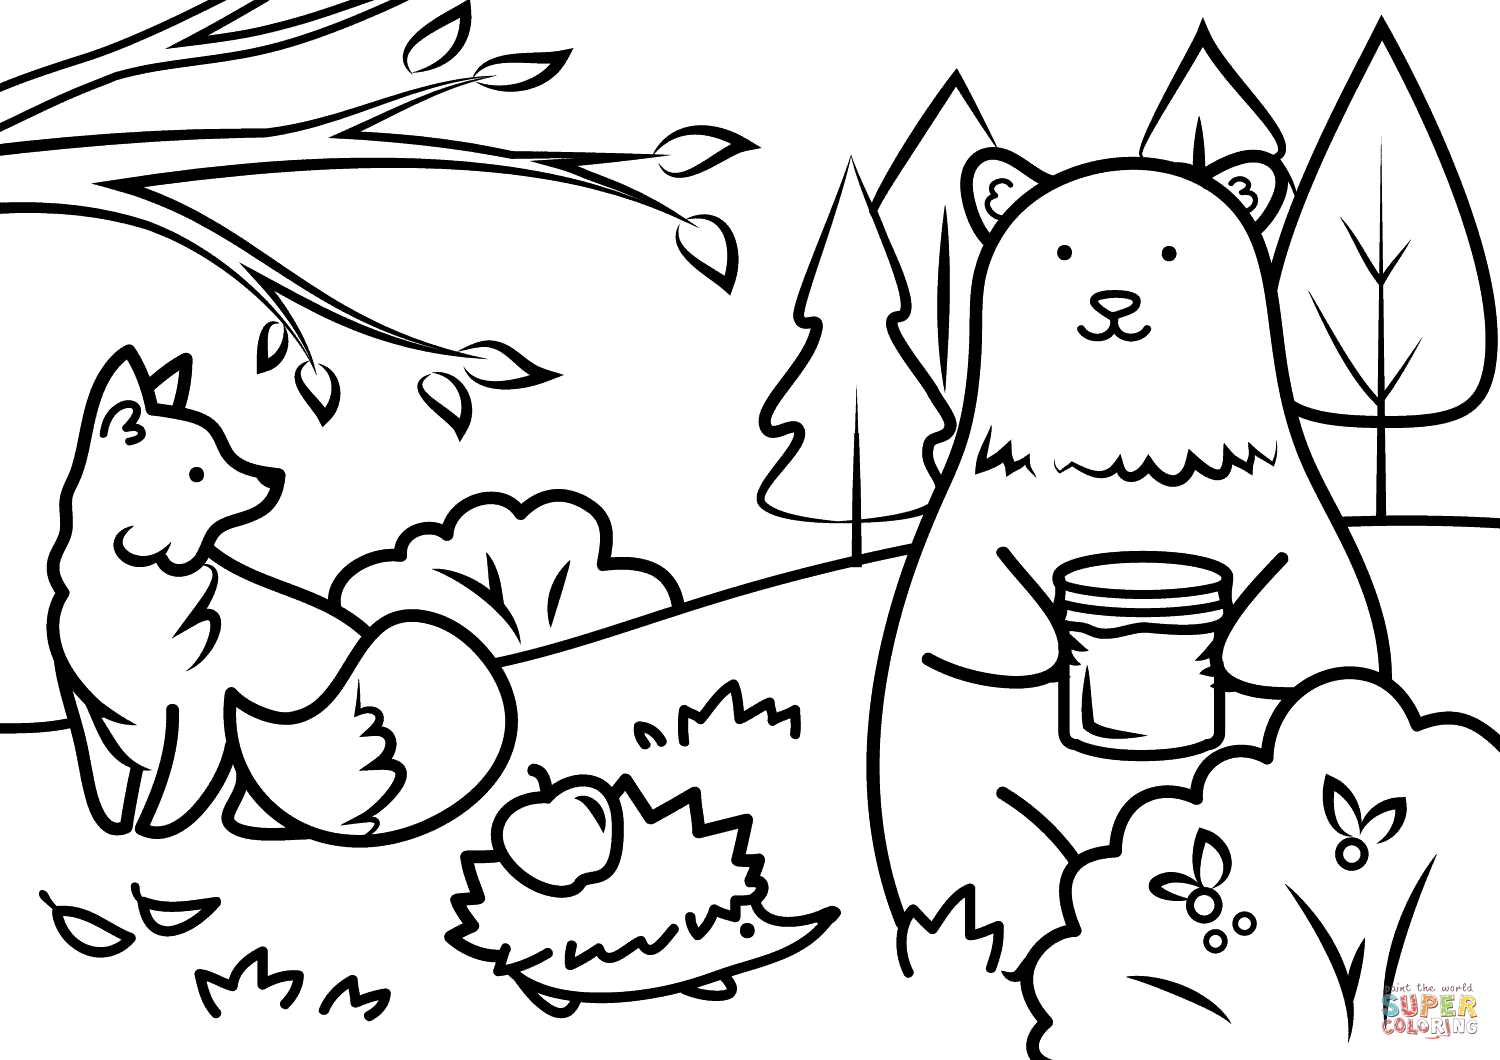 Autumn Animals Coloring Page | Free Printable Coloring Pages - Free Printable Animal Coloring Pages